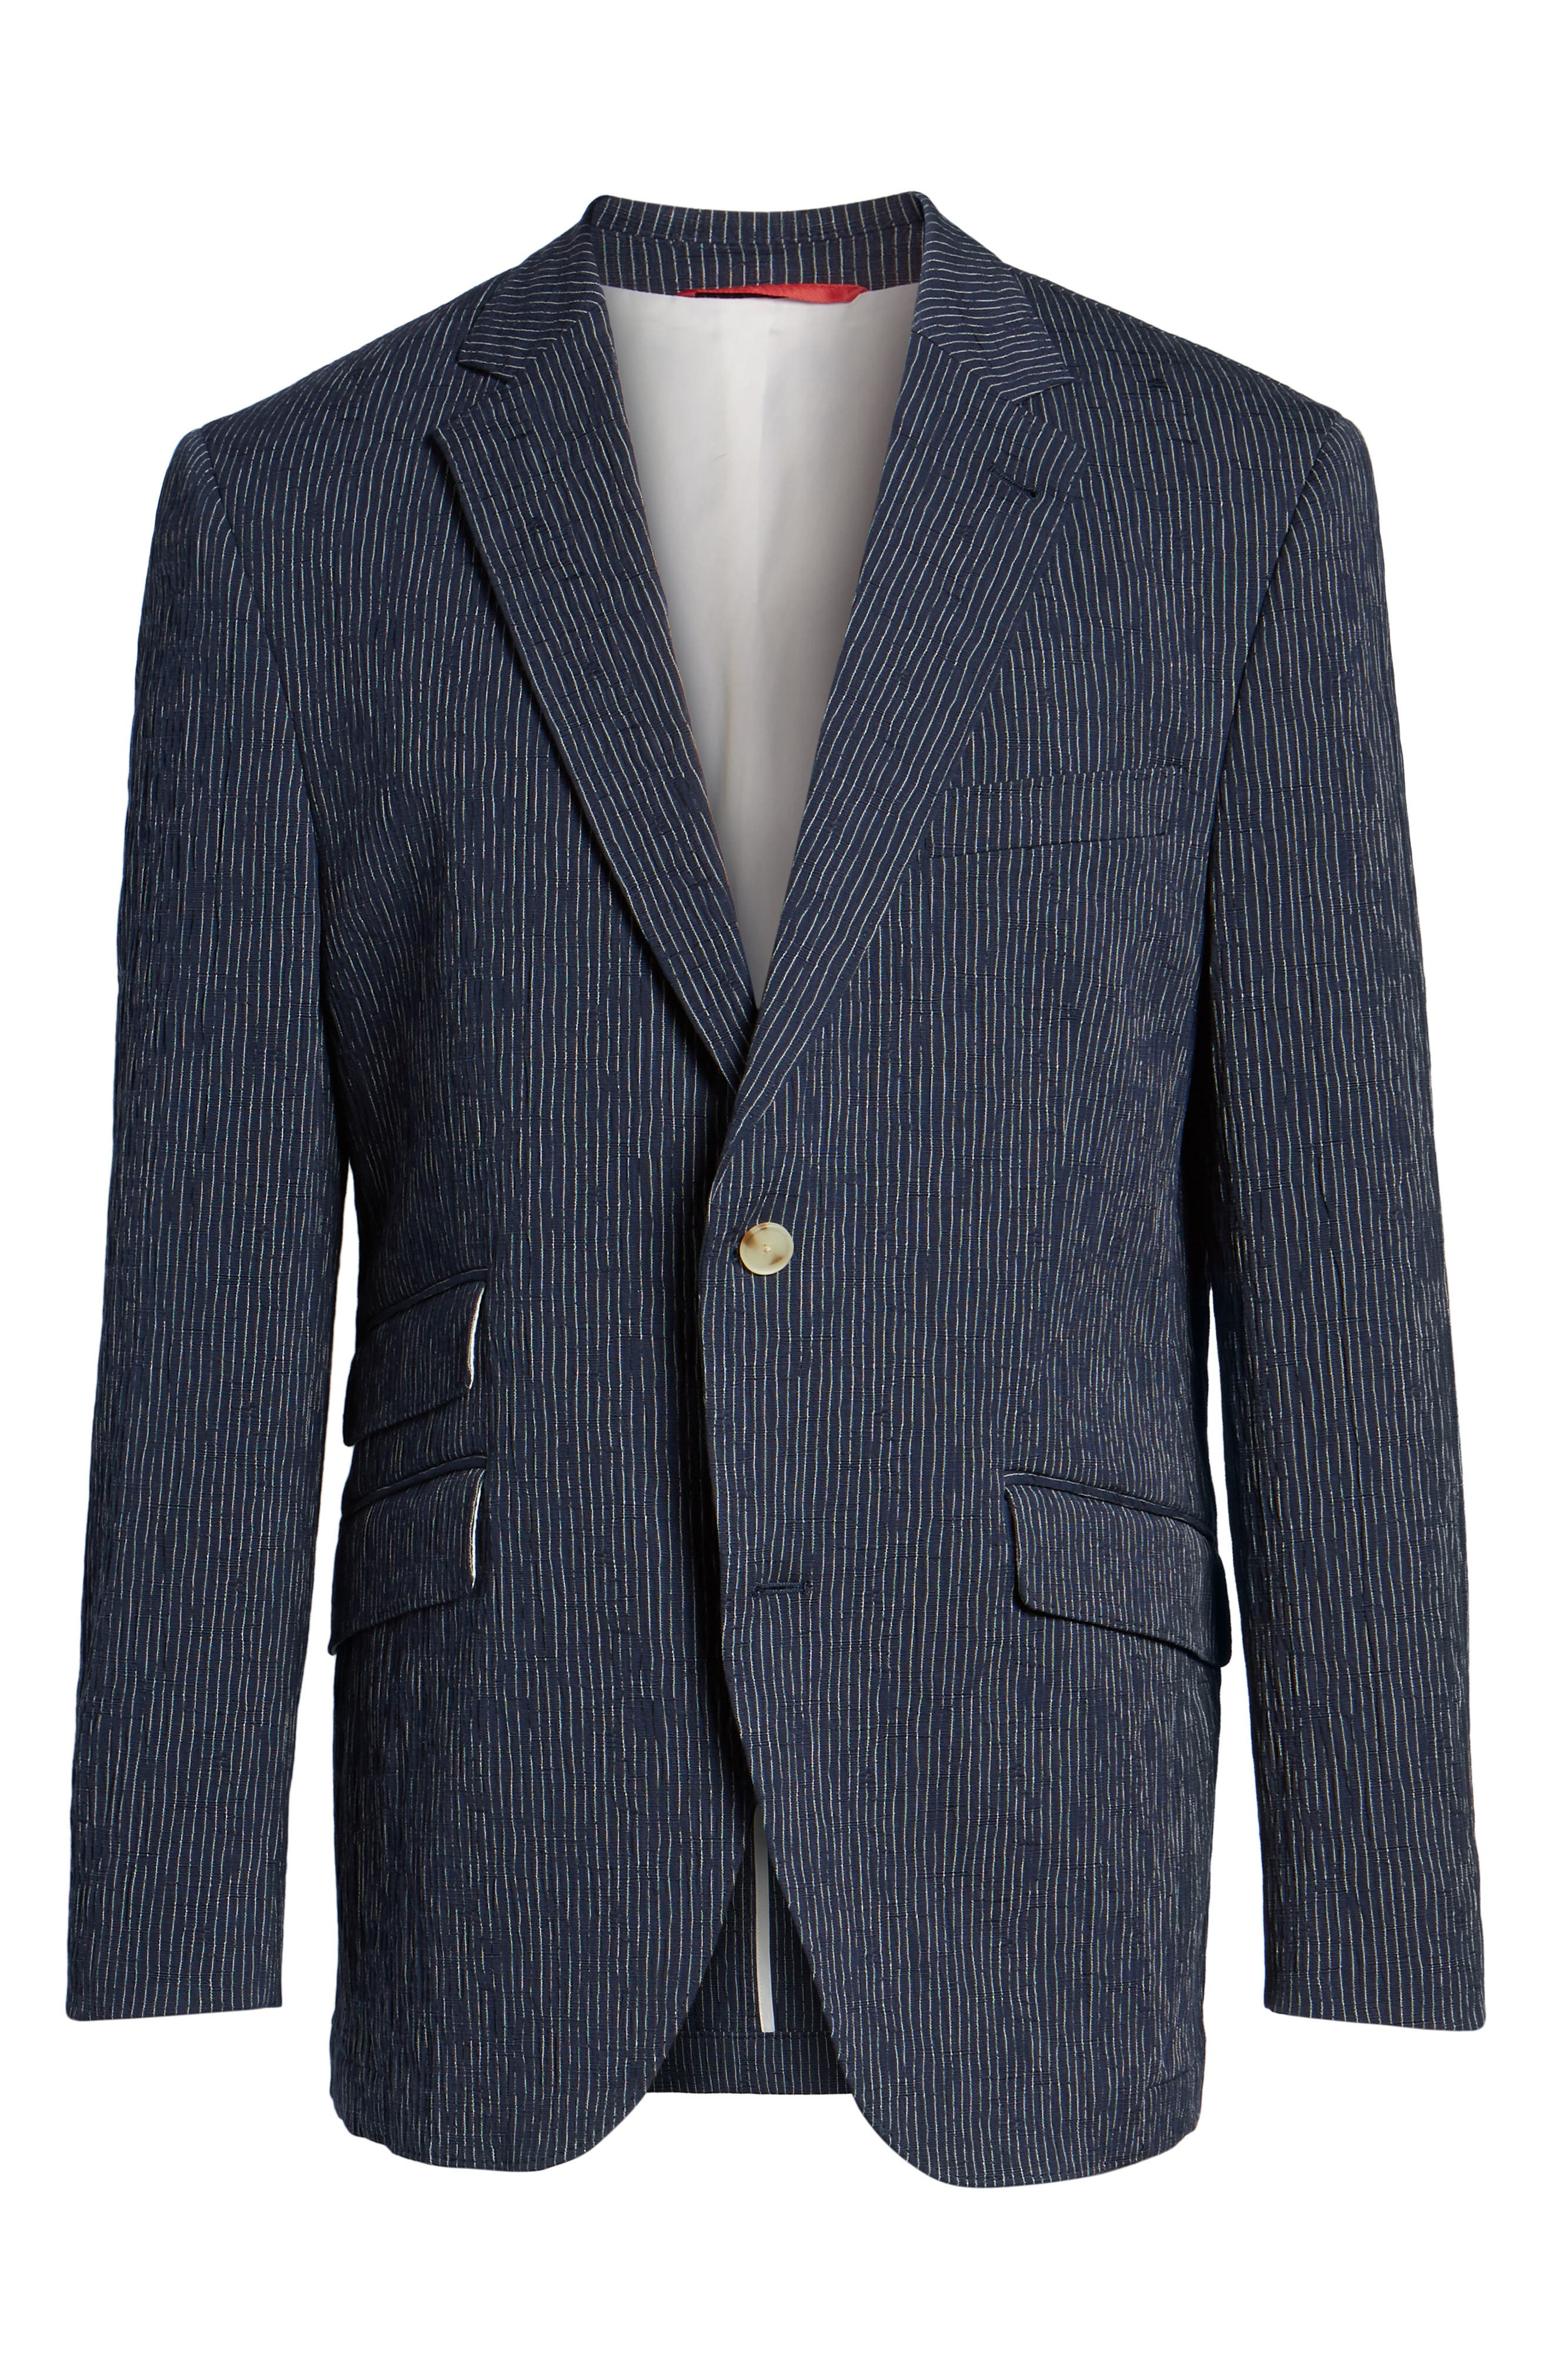 Sting AIM Classic Fit Stretch Stripe Cotton Sport Coat,                             Alternate thumbnail 5, color,                             410